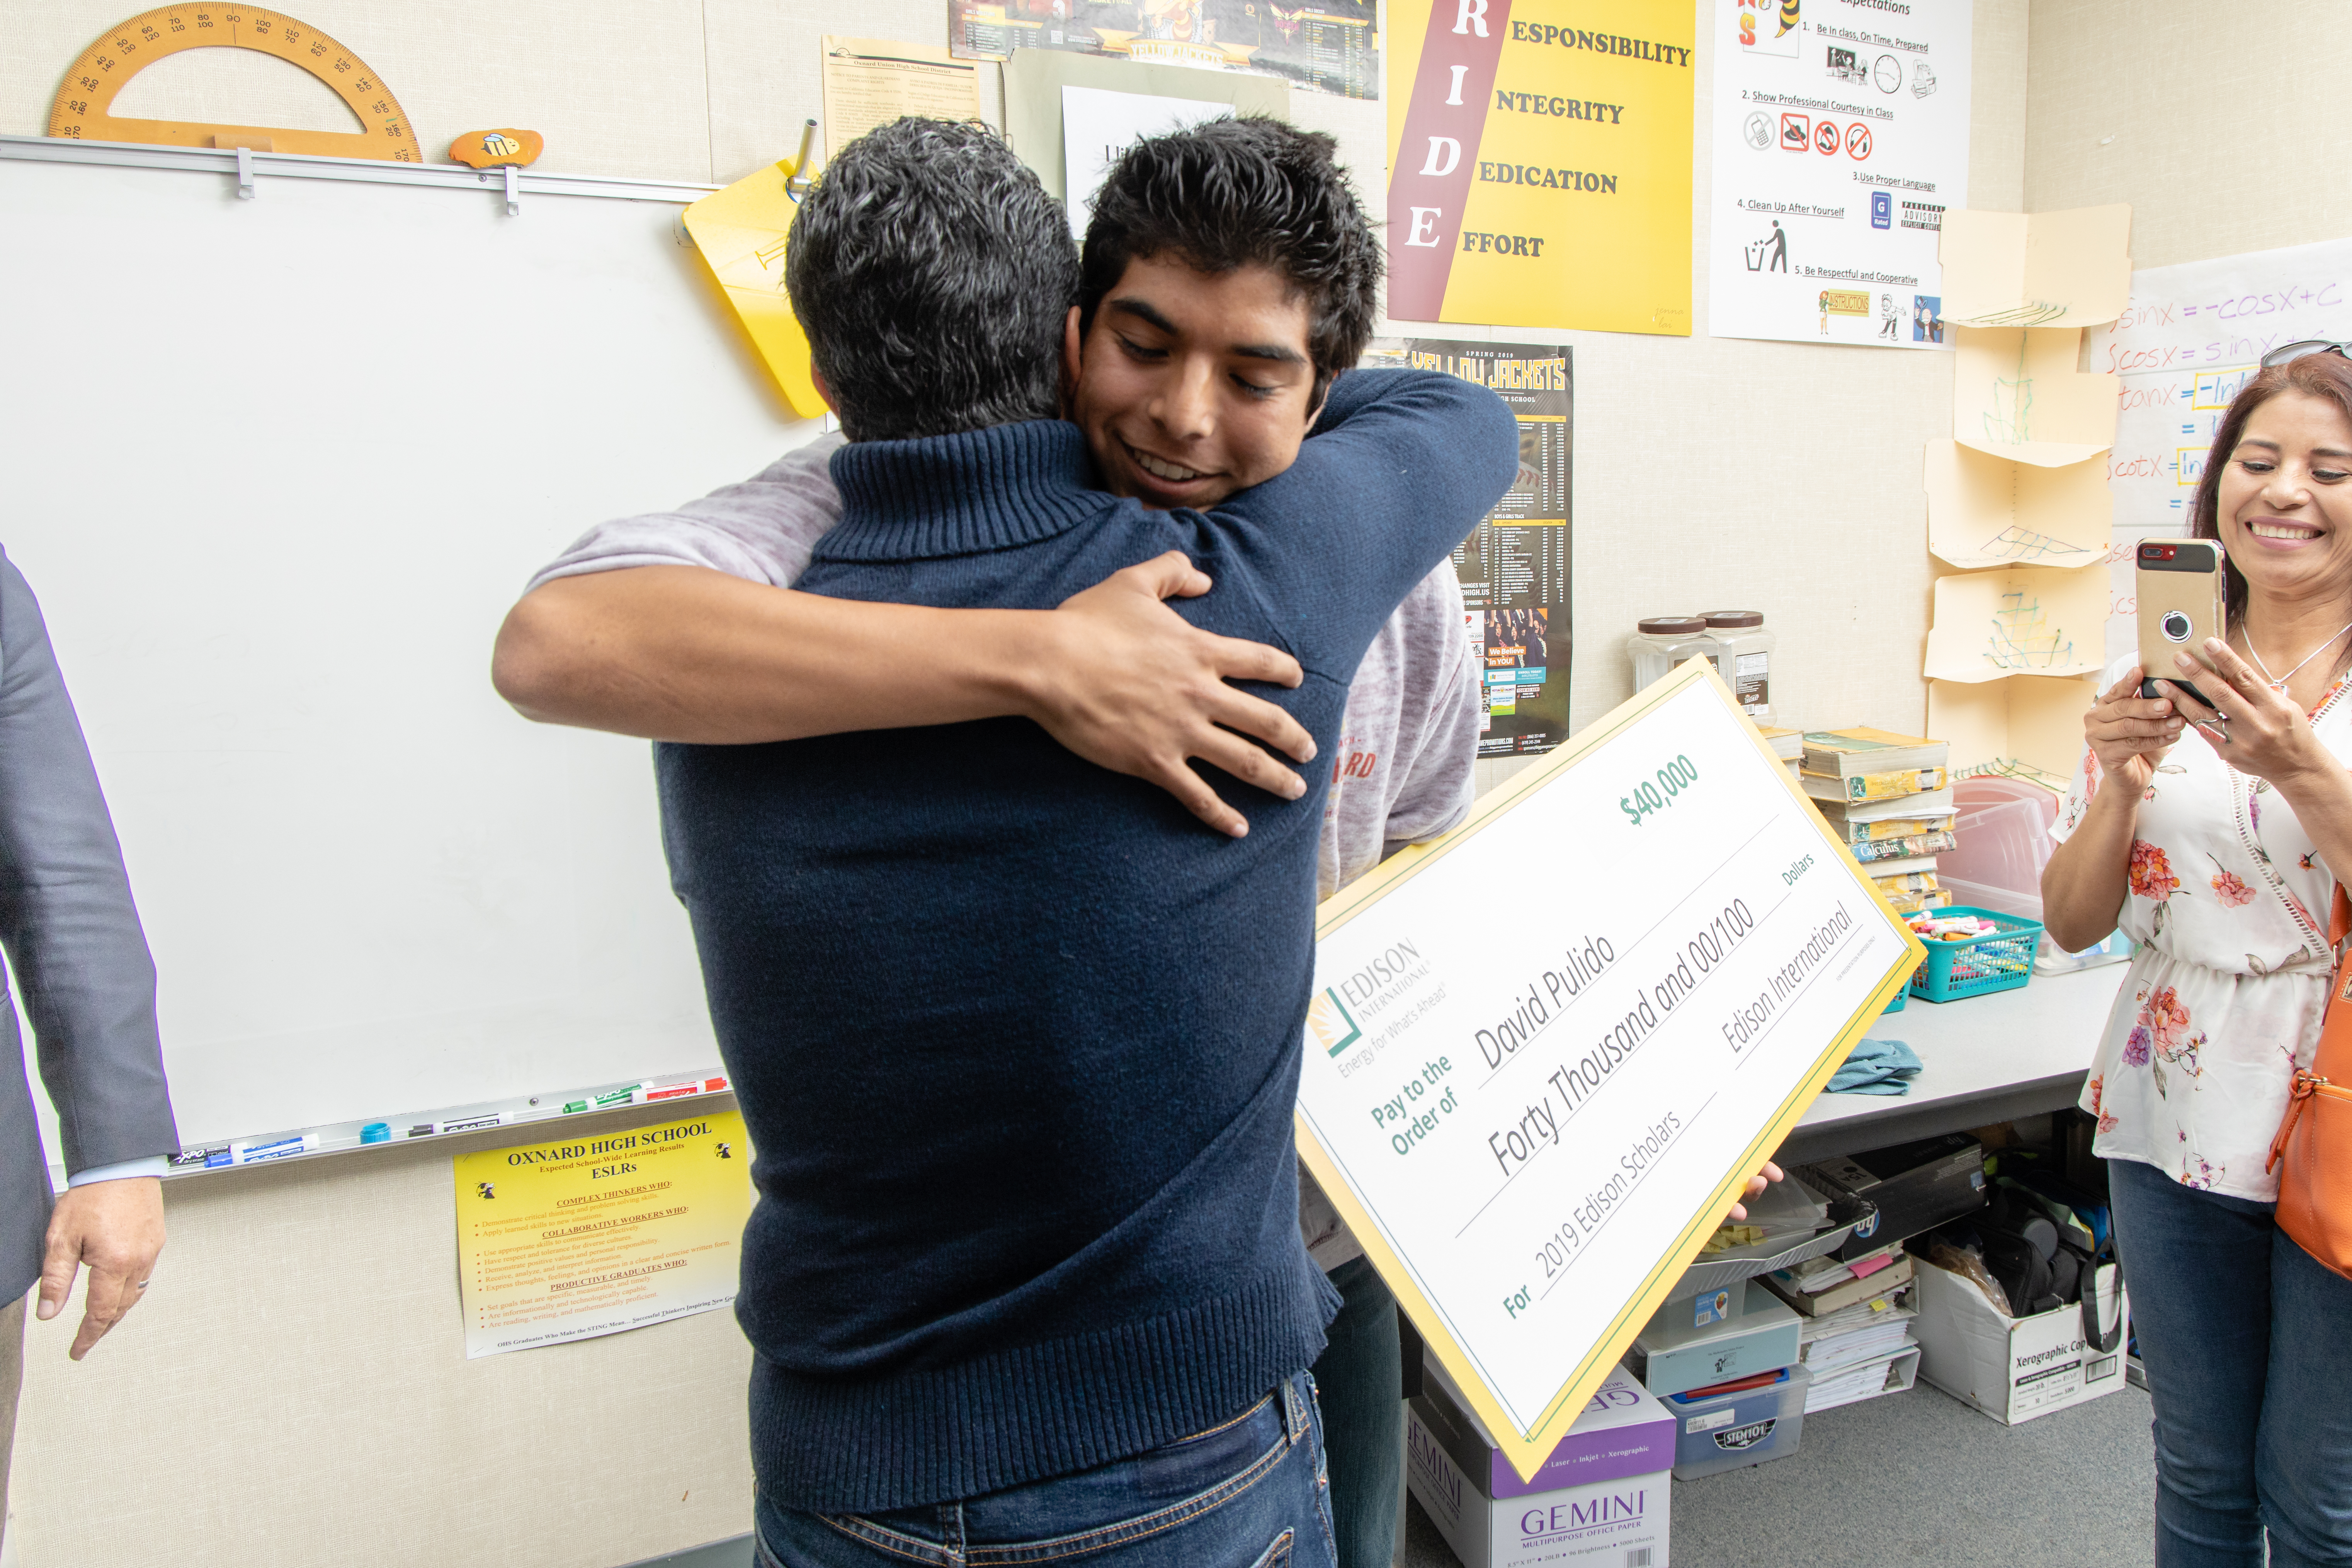 2019 Edison Scholar David Pulido hugs his dad after learning he's a 2019 Edison Scholar.